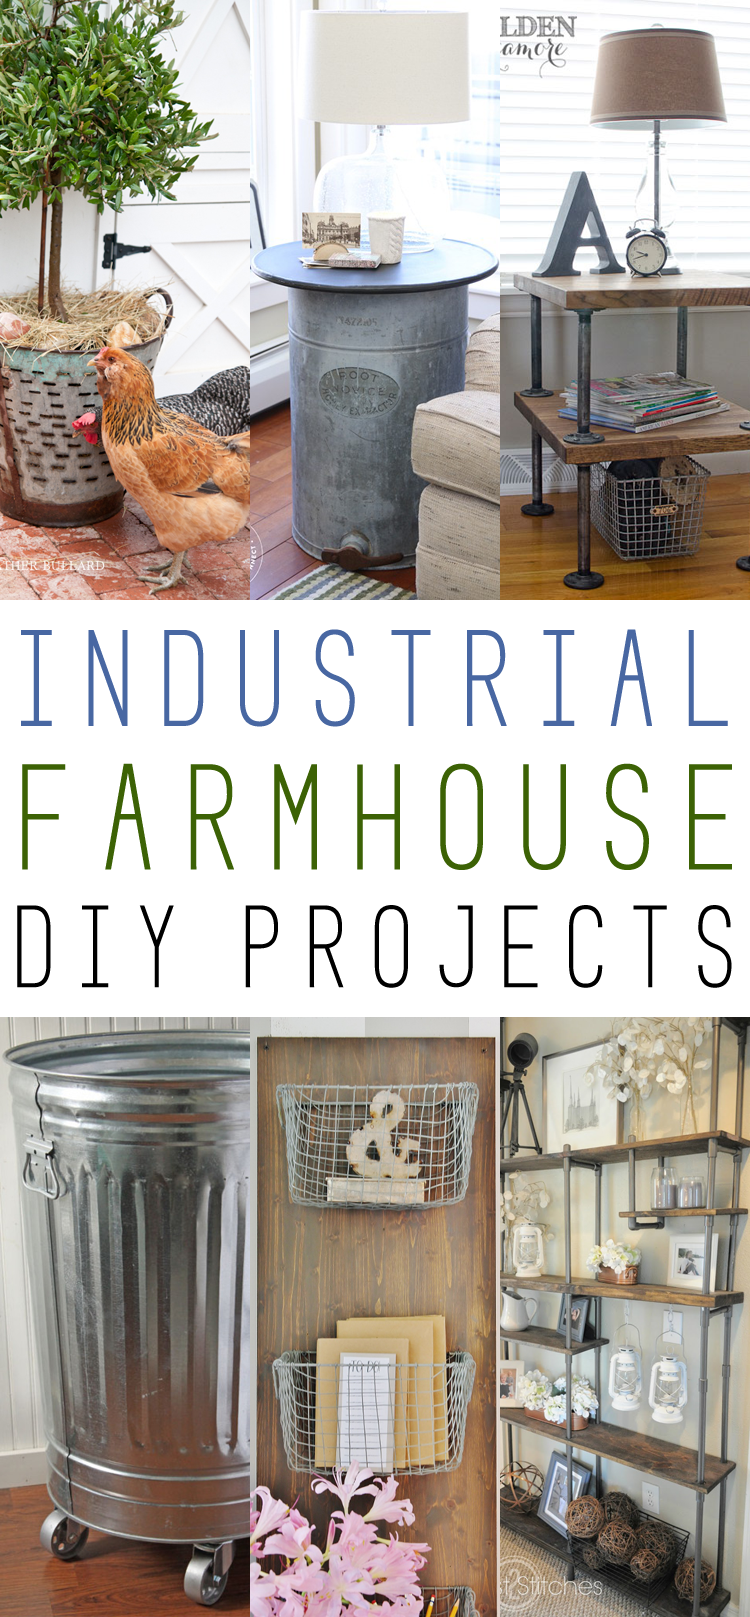 Farmhouse fridays industrial farmhouse diy projects the cottage market - Inspired diy ideas small kitchen ...